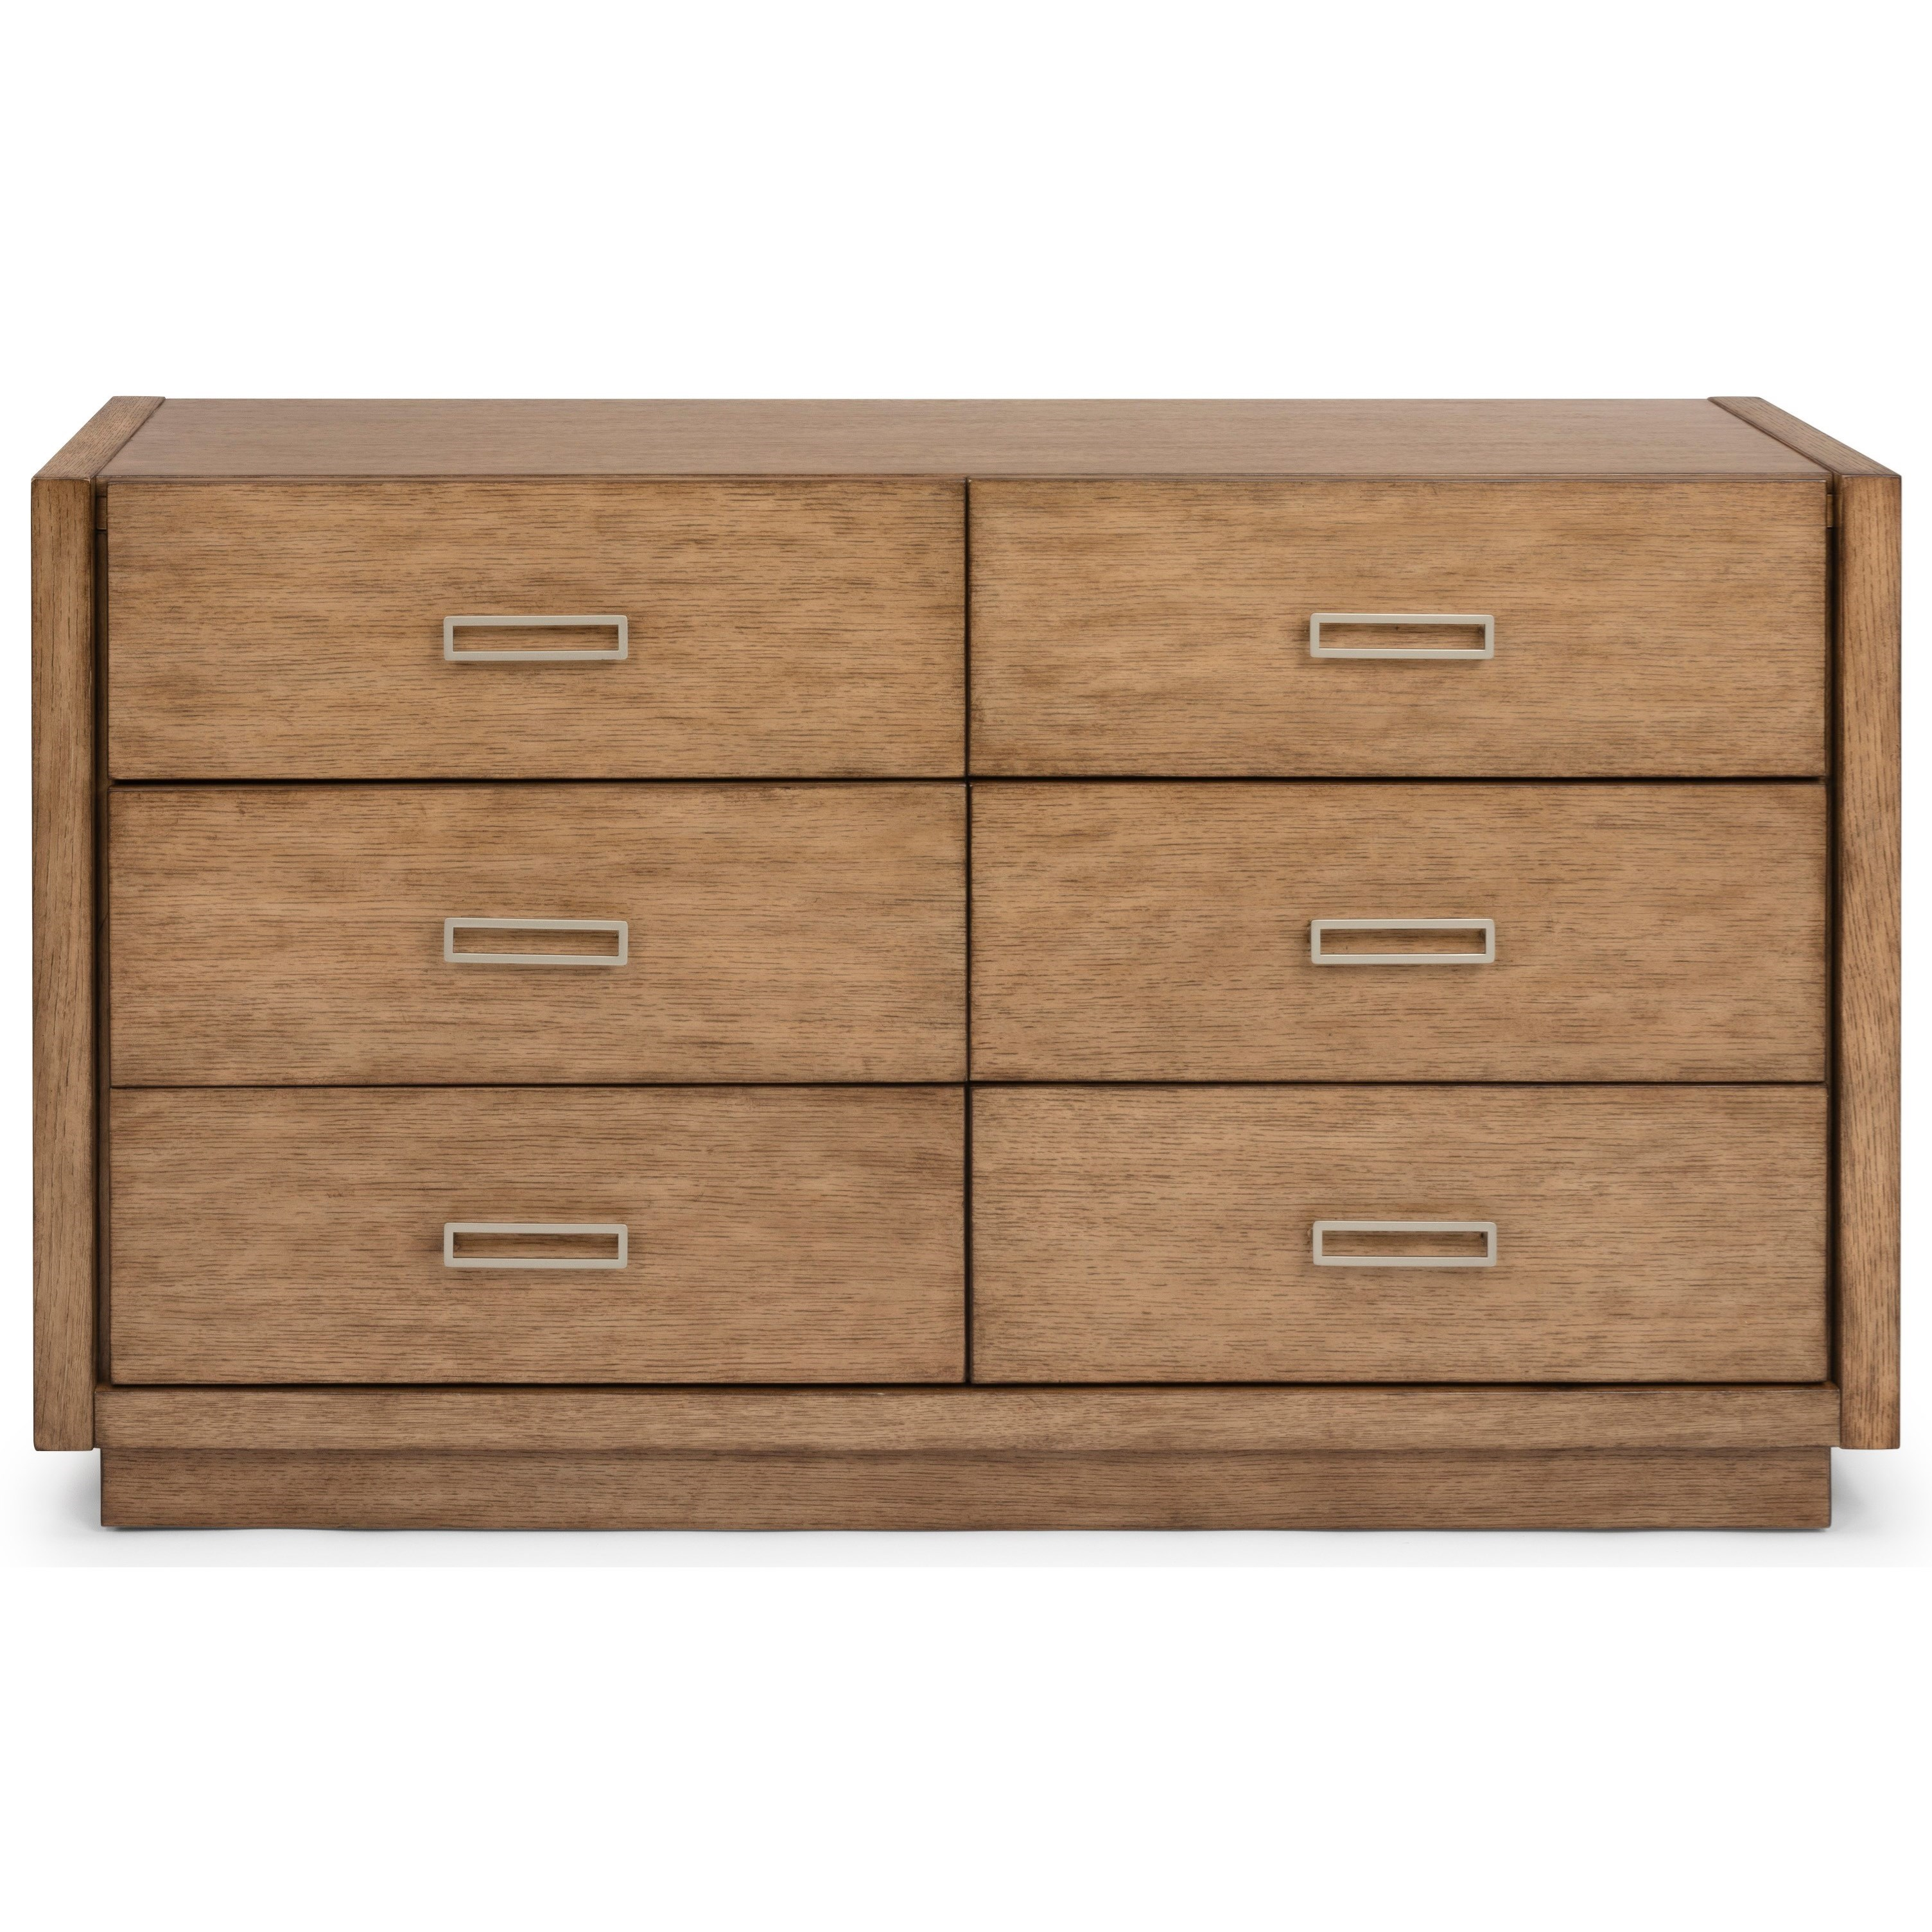 Big Sur Dresser by Homestyles at Northeast Factory Direct